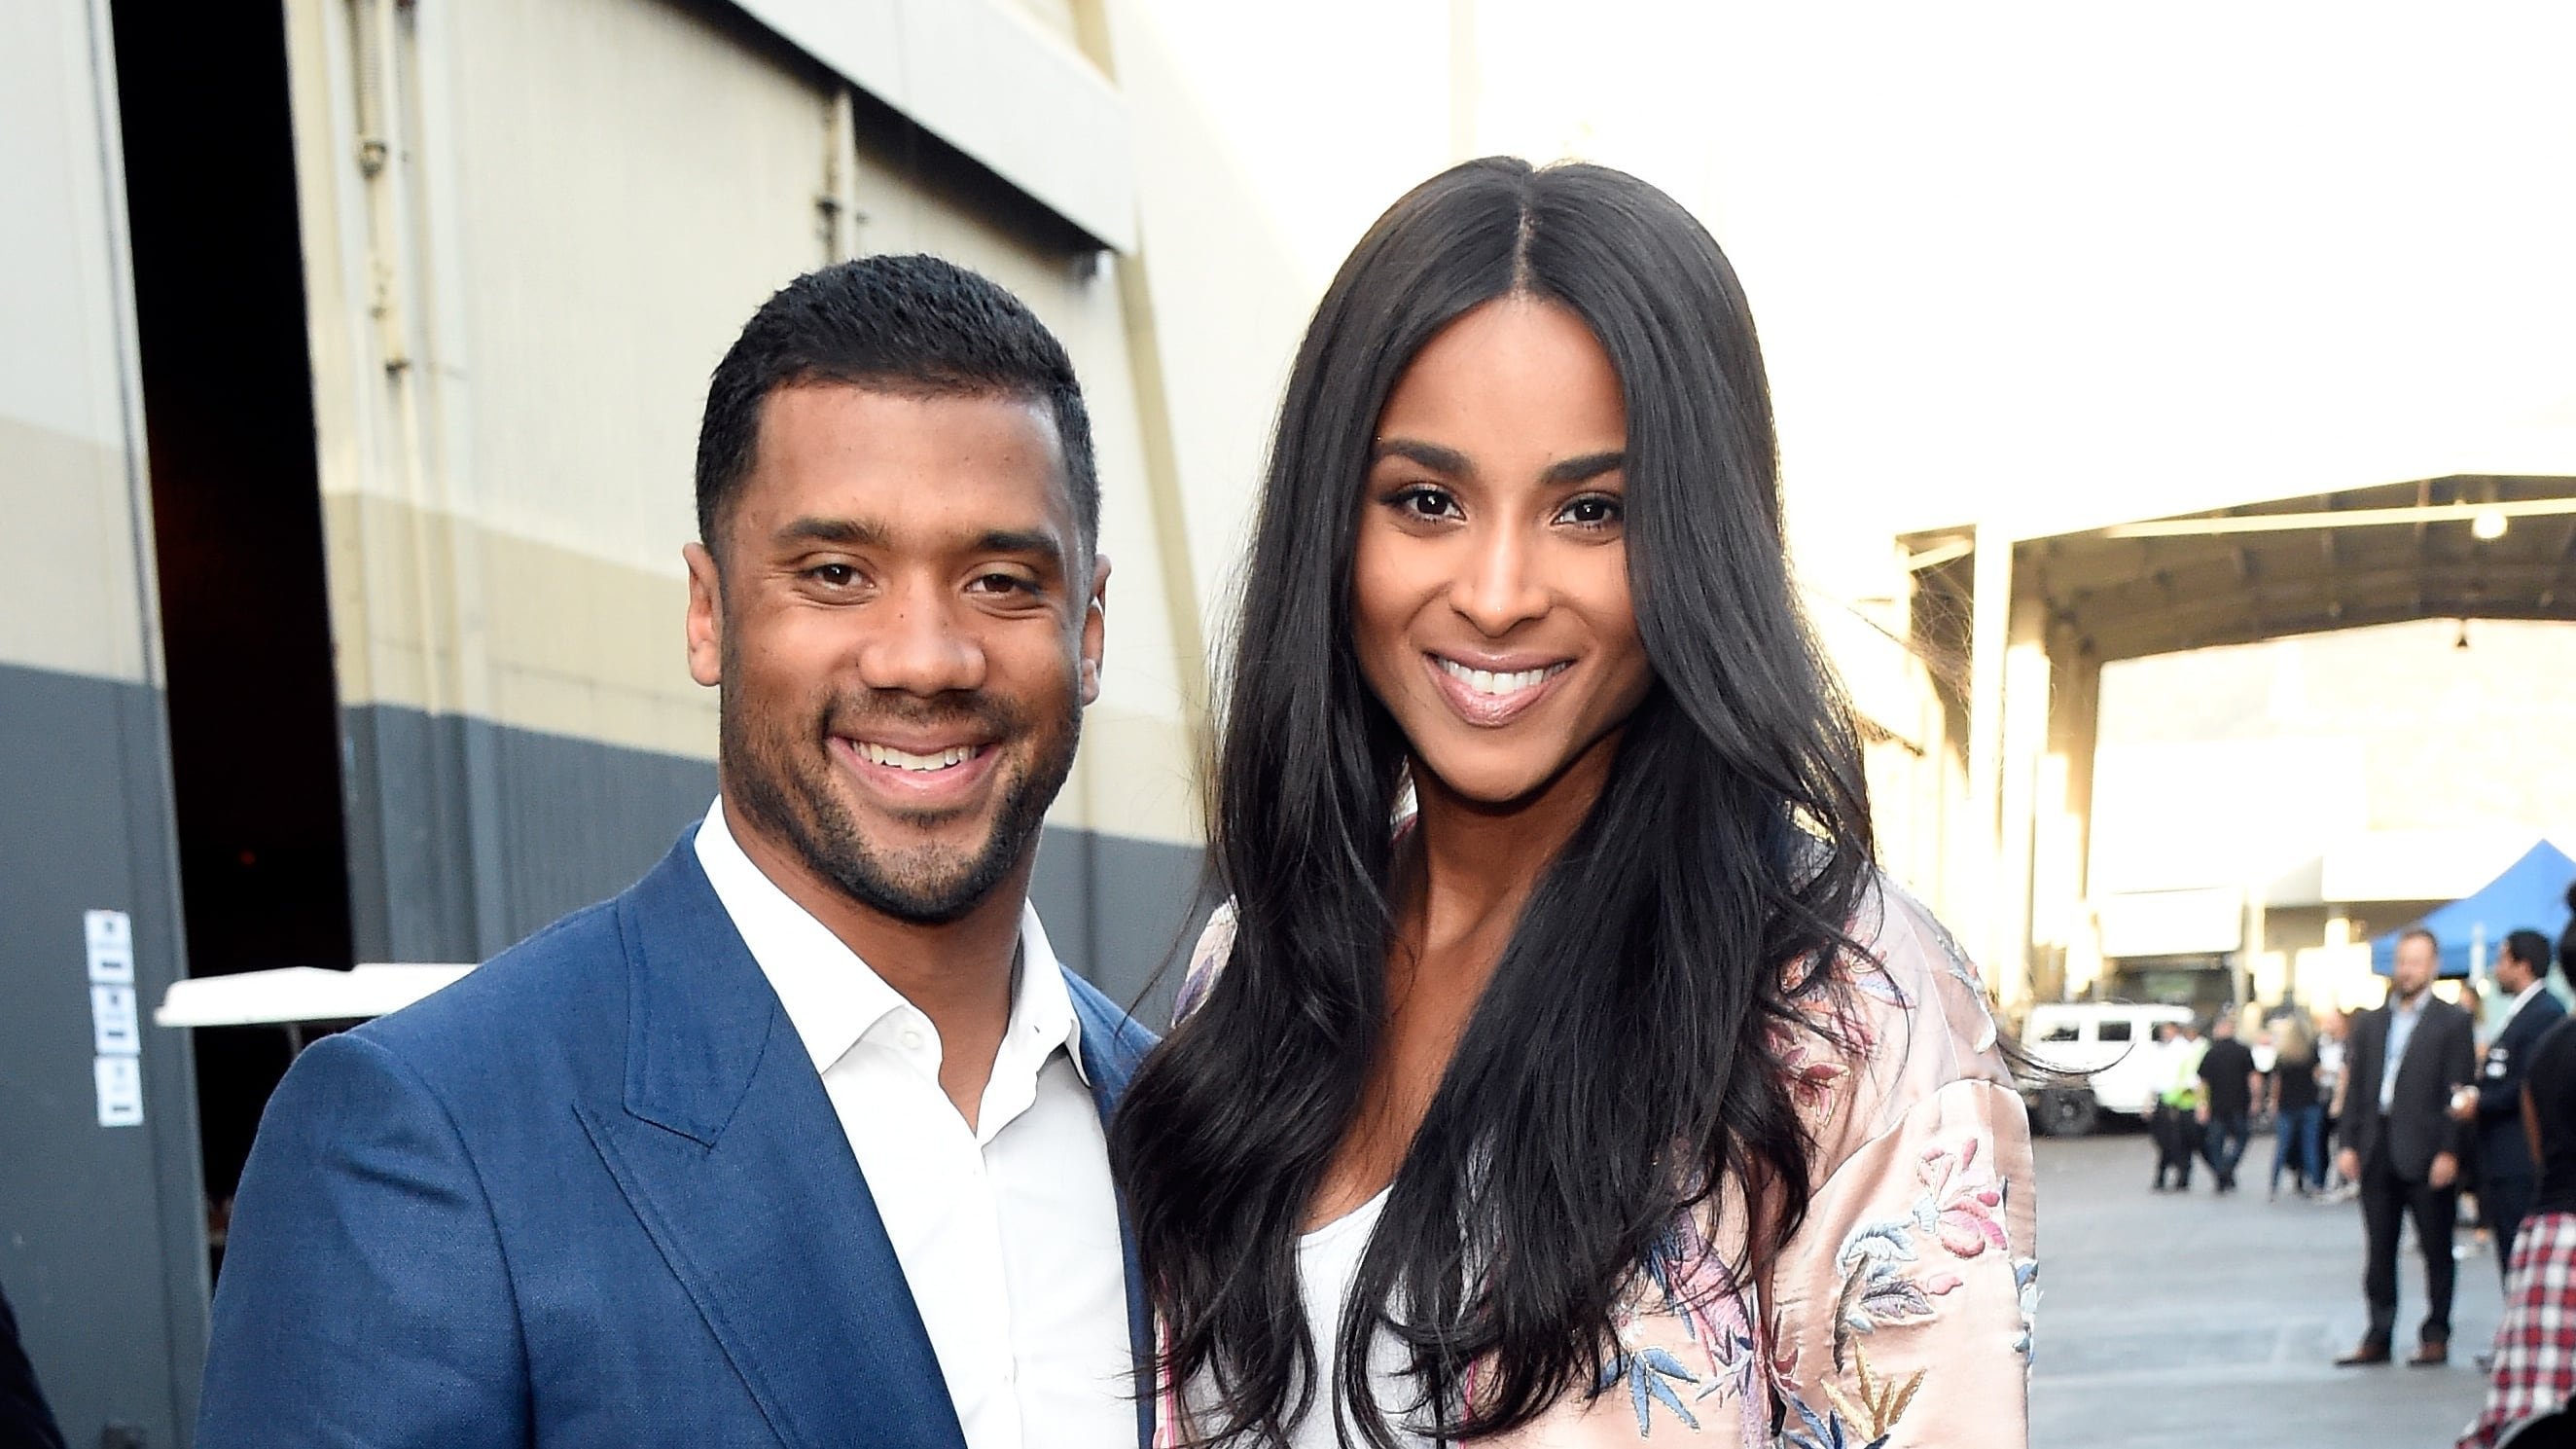 Meet Sienna Princess: Russell Wilson and Ciara finally share photos of daughter